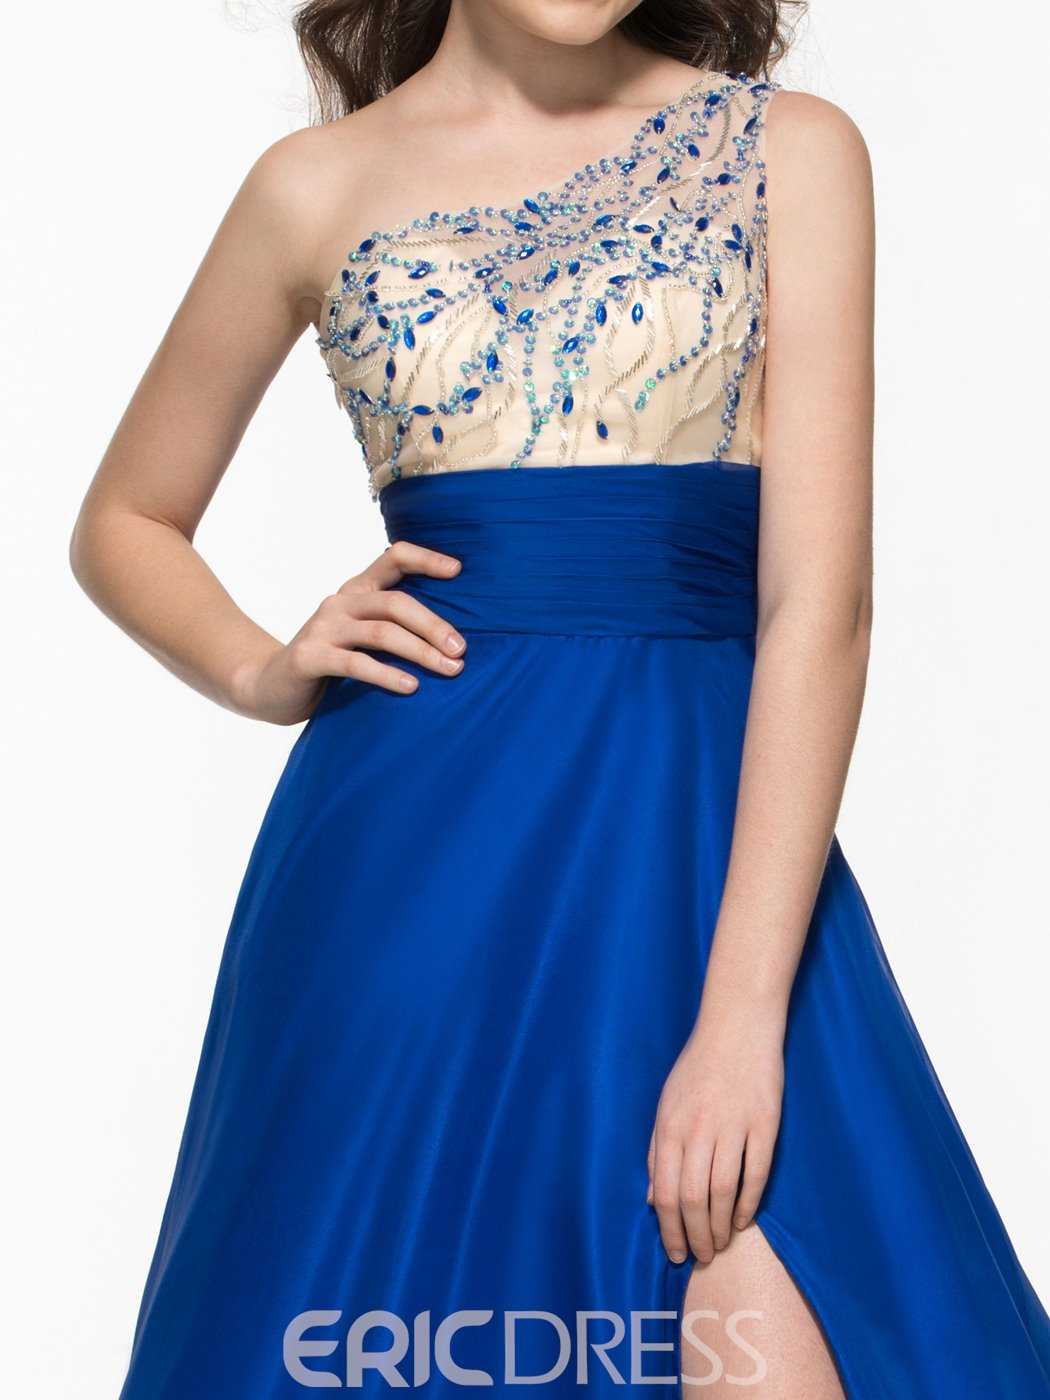 Ericdress One Shoulder Split-Front Beading Sequins Prom Dress